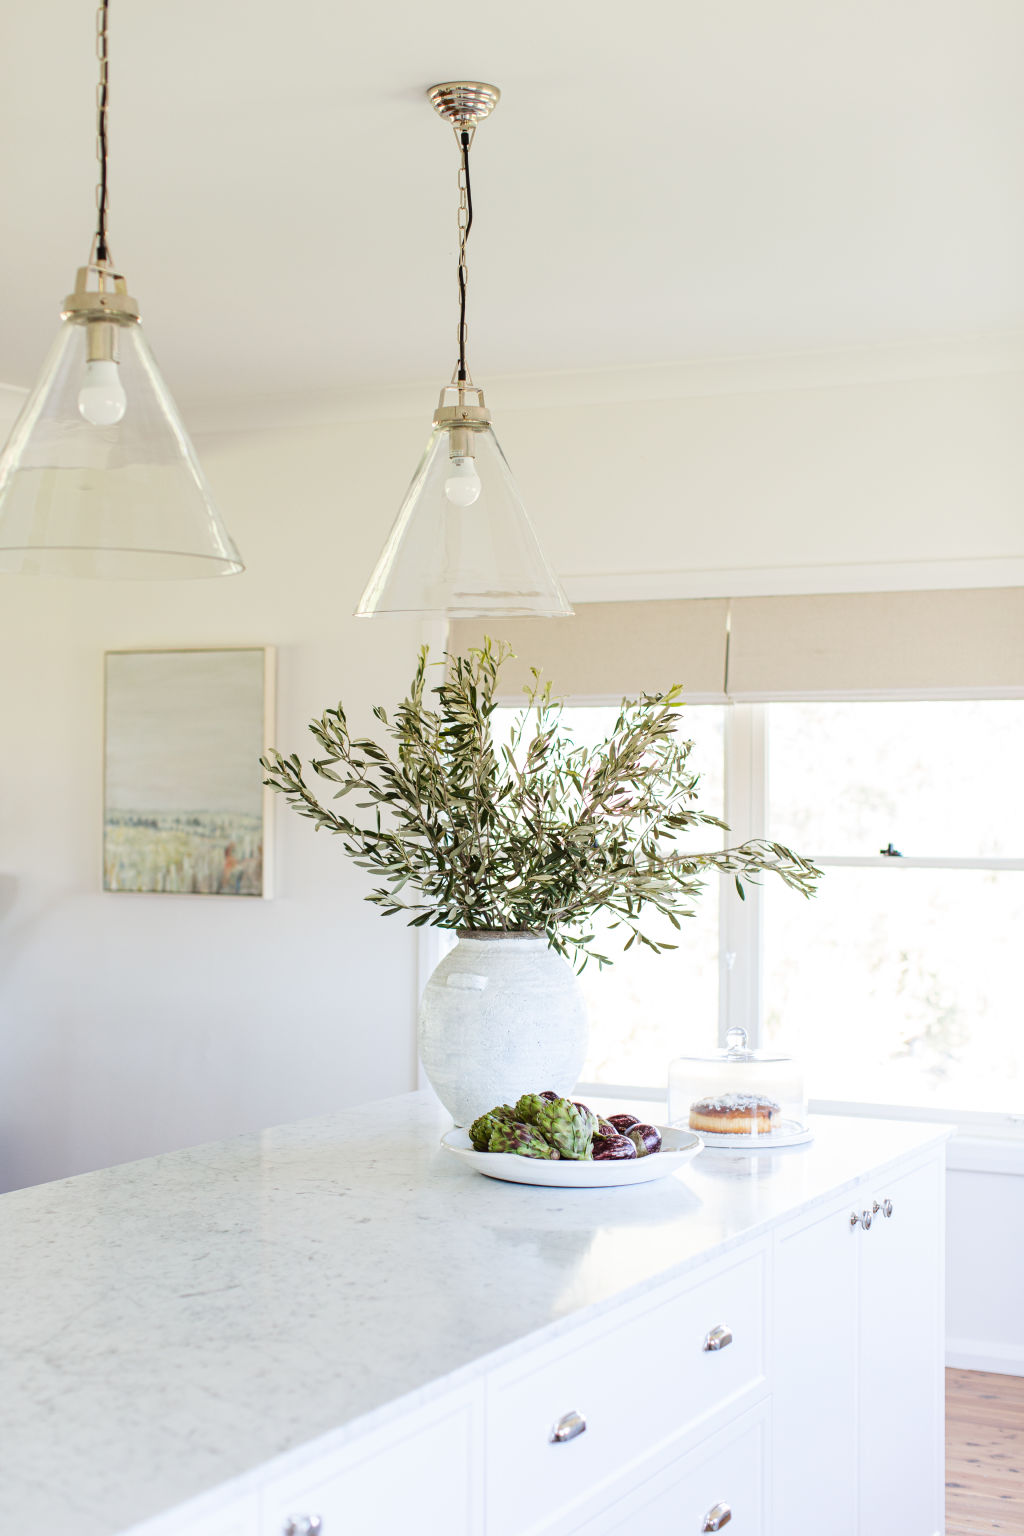 The Design Paddock's bright and breezy Port Stephens project.